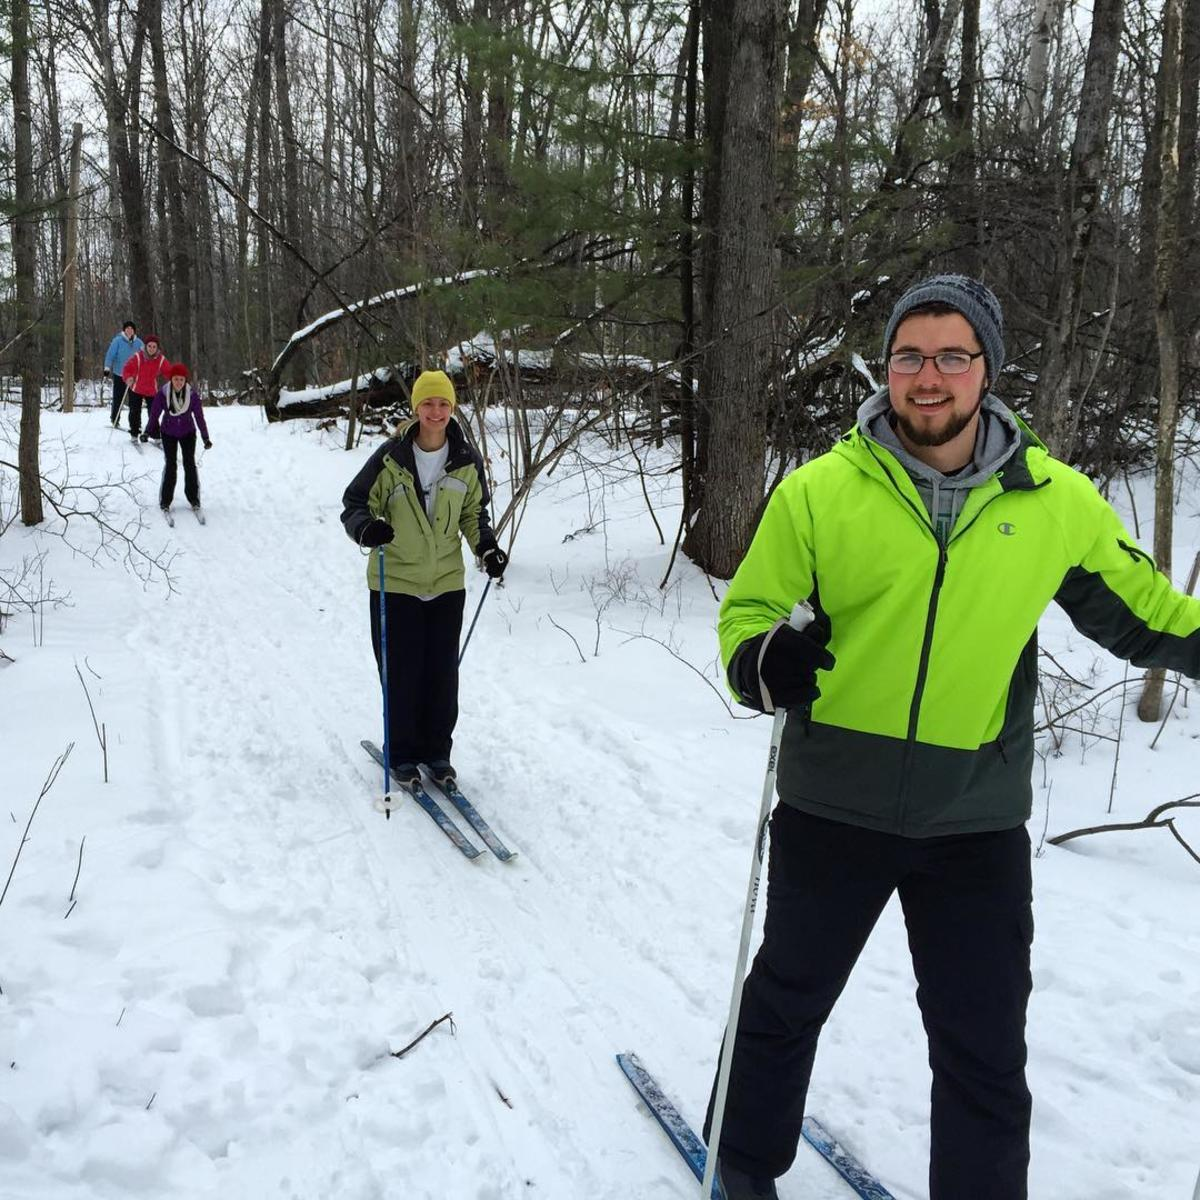 People cross-country skiing & smiling on the trails at Midland City Forest Winter Sports Park